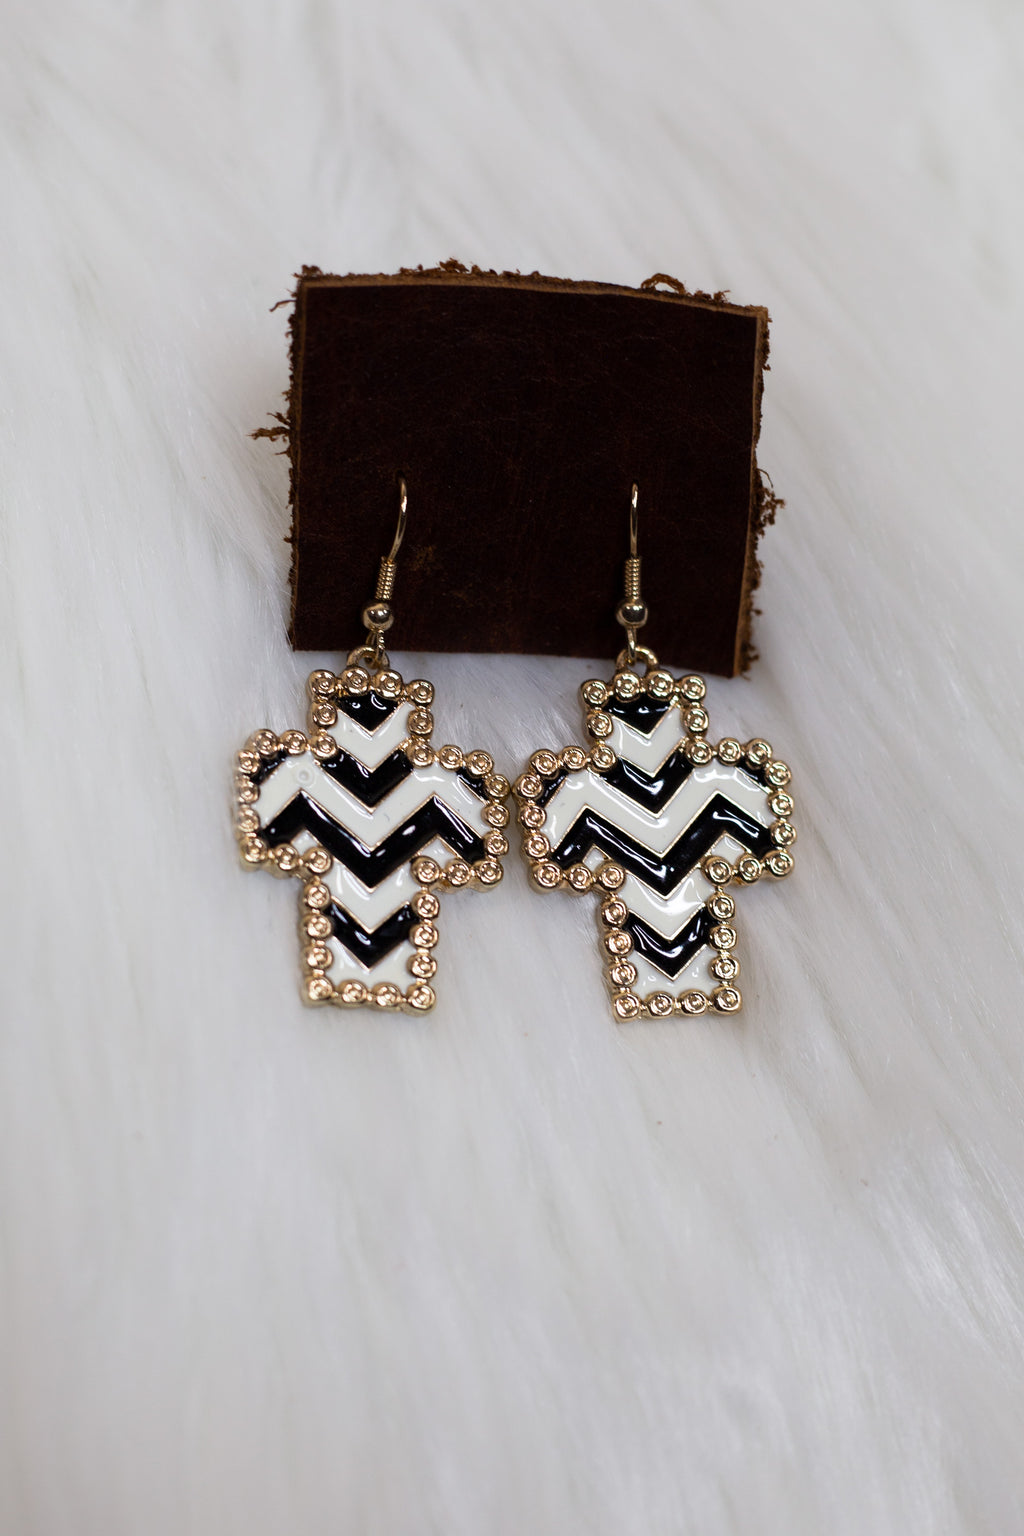 Zebra Cross Earrings - Gypsie Souls